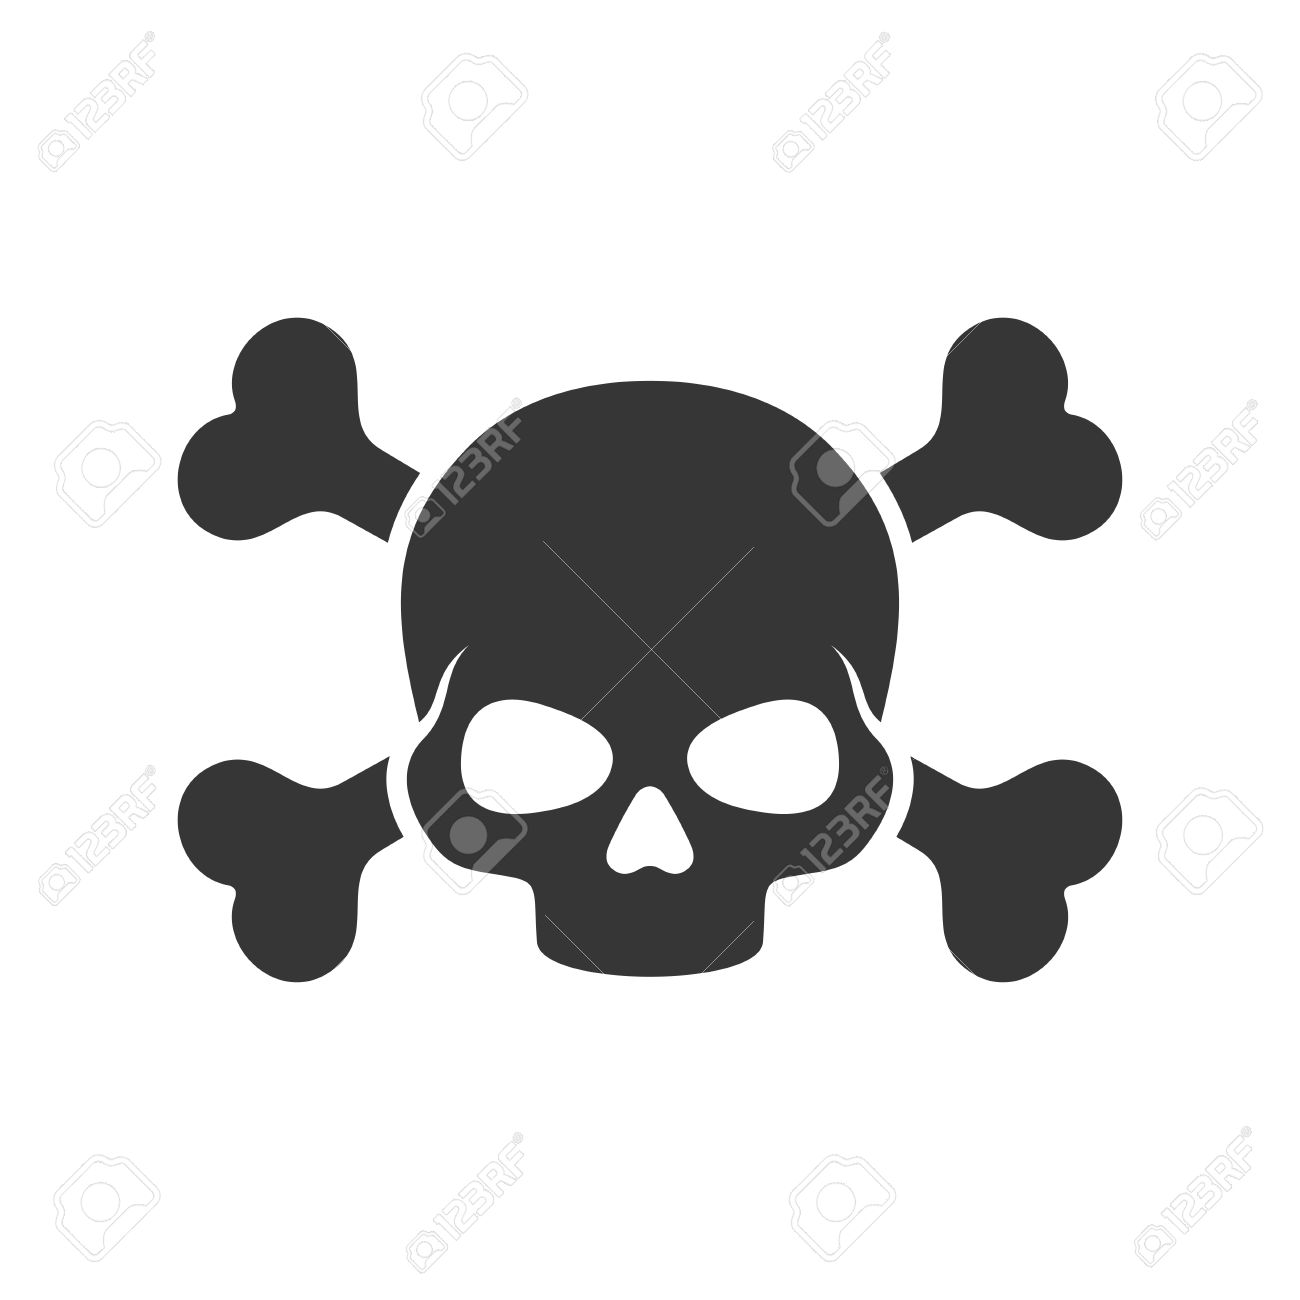 skull and crossbones icon on white background vector royalty free rh 123rf com cute skull and crossbones vector skull and crossbones vector free download